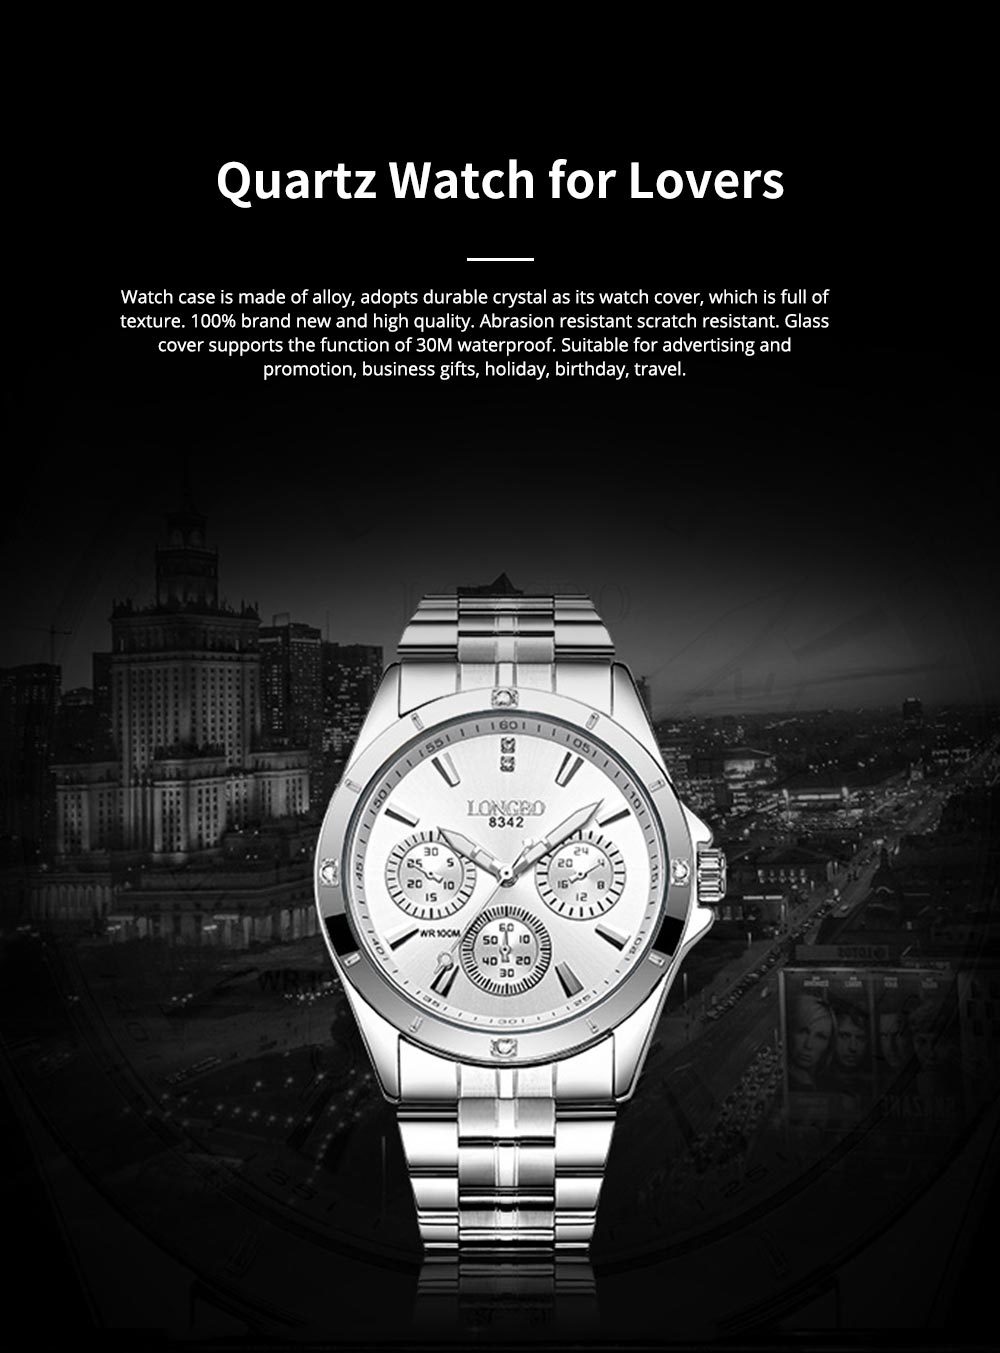 Waterproof 30M Couple Quartz Watch with Steel Band for Men & Women, Quartz Watch for Lovers 0